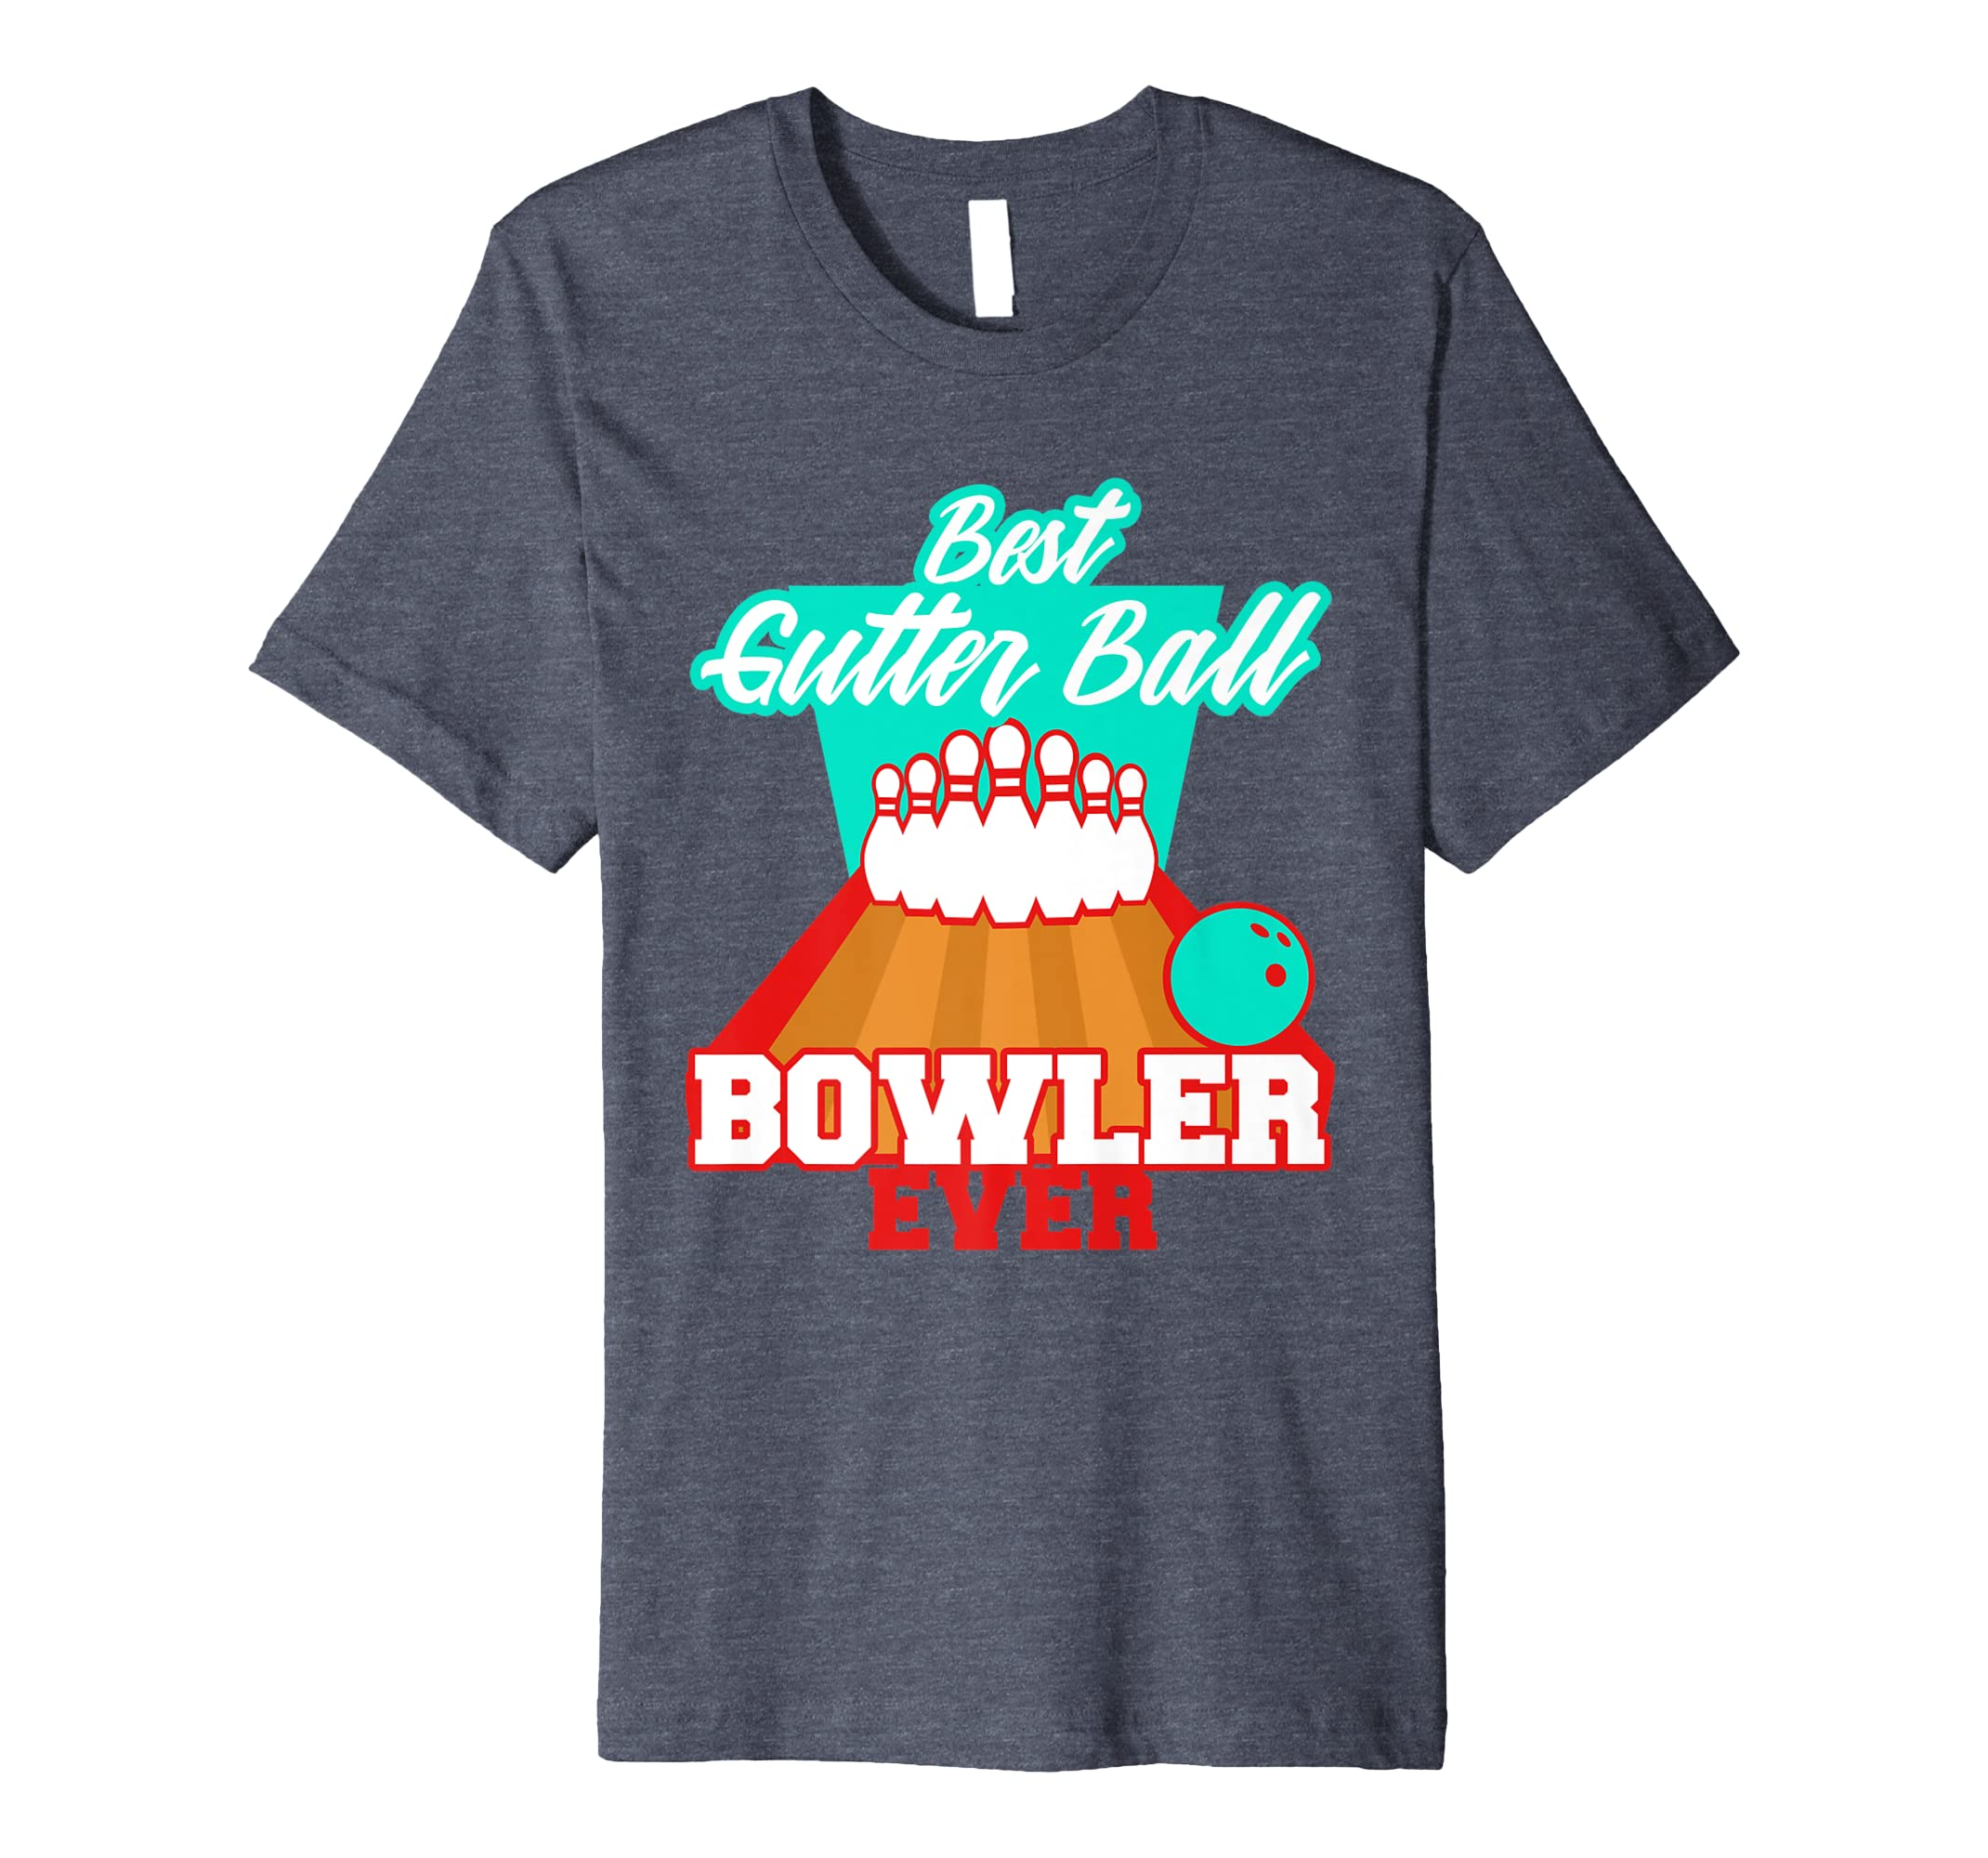 bdb08e1b87 Amazon.com: Bowling Funny League T-shirt Bowler Gutter Ball Gag Gift:  Clothing